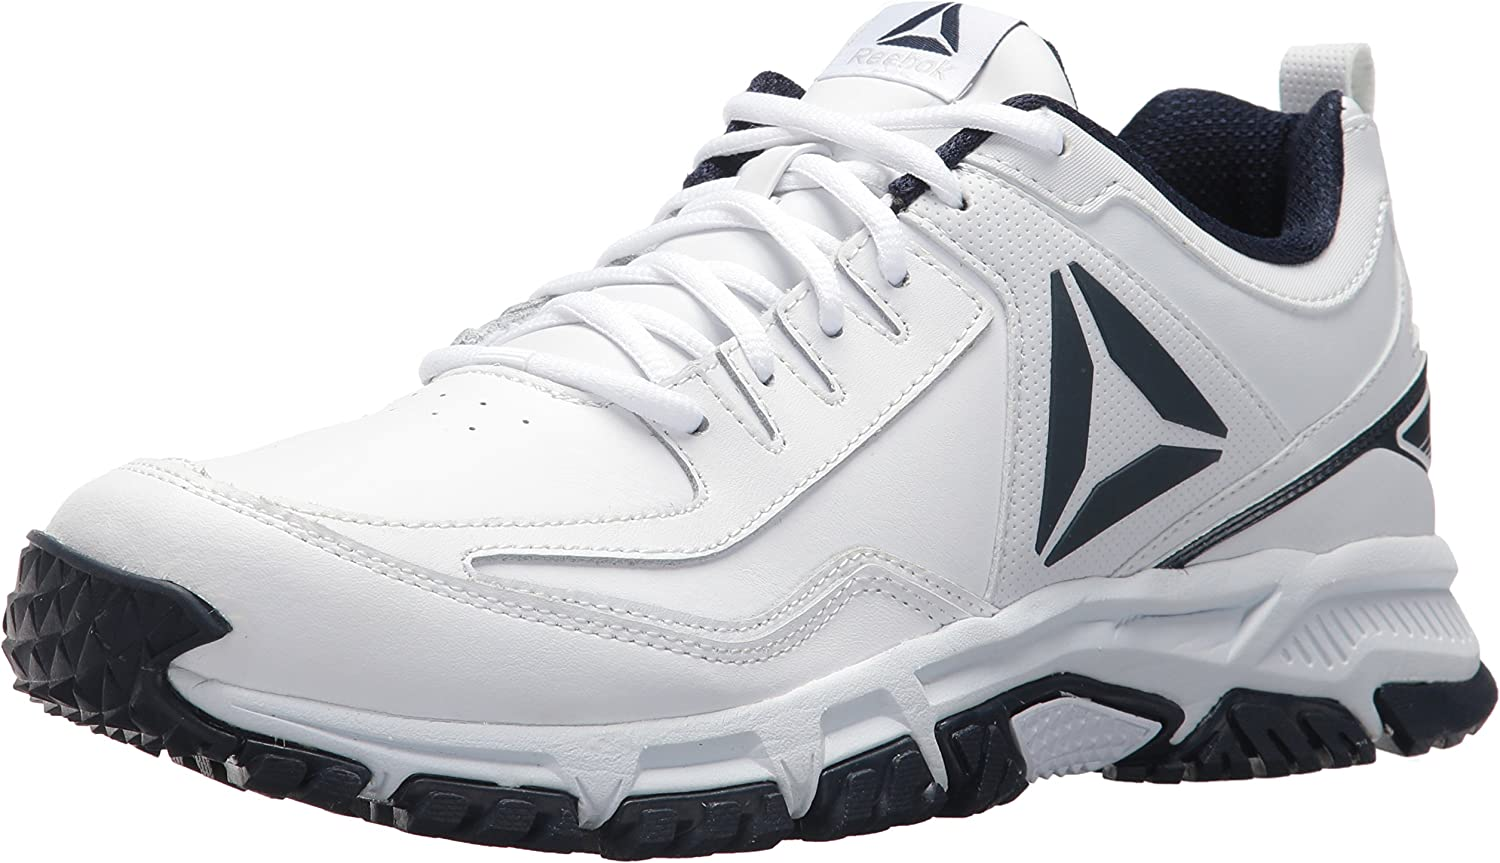 Reebok Men's Ridgerider Leather Turnschuhe, Weiß coll. Navy, 7 M US